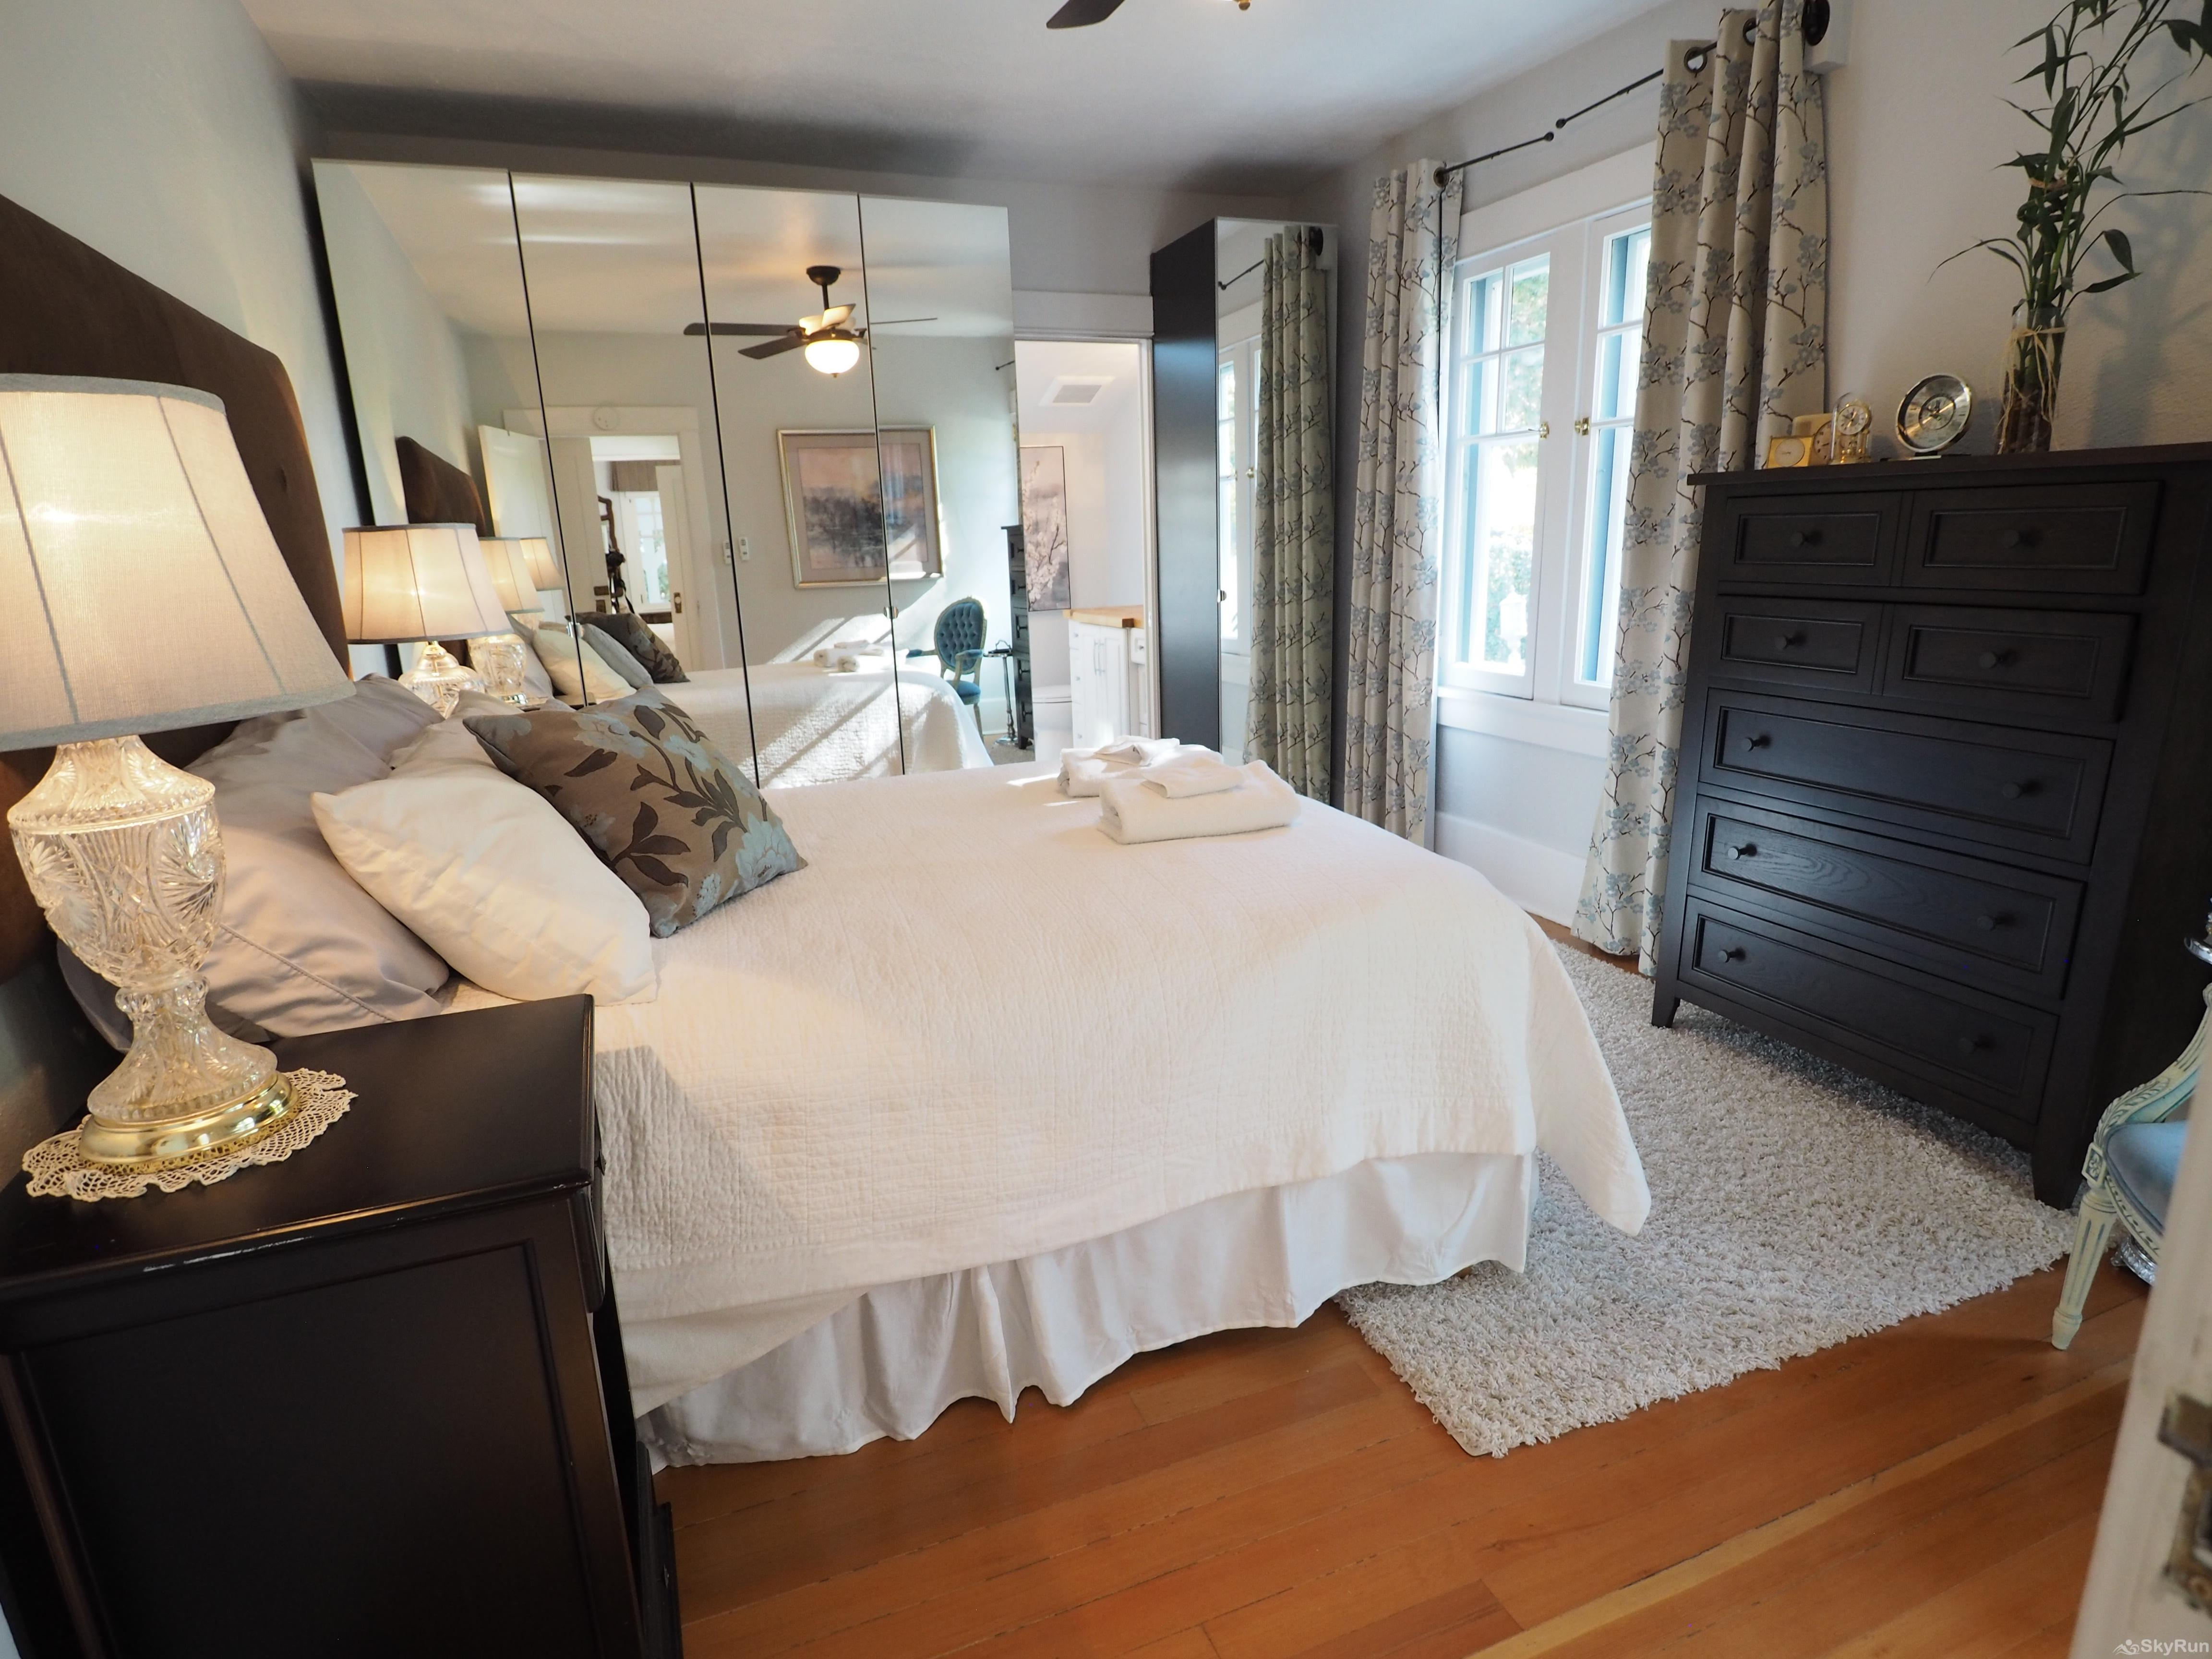 Penticton Country Estate The Marble Master bedroom is on the main floor and provides a luxurious guest experience